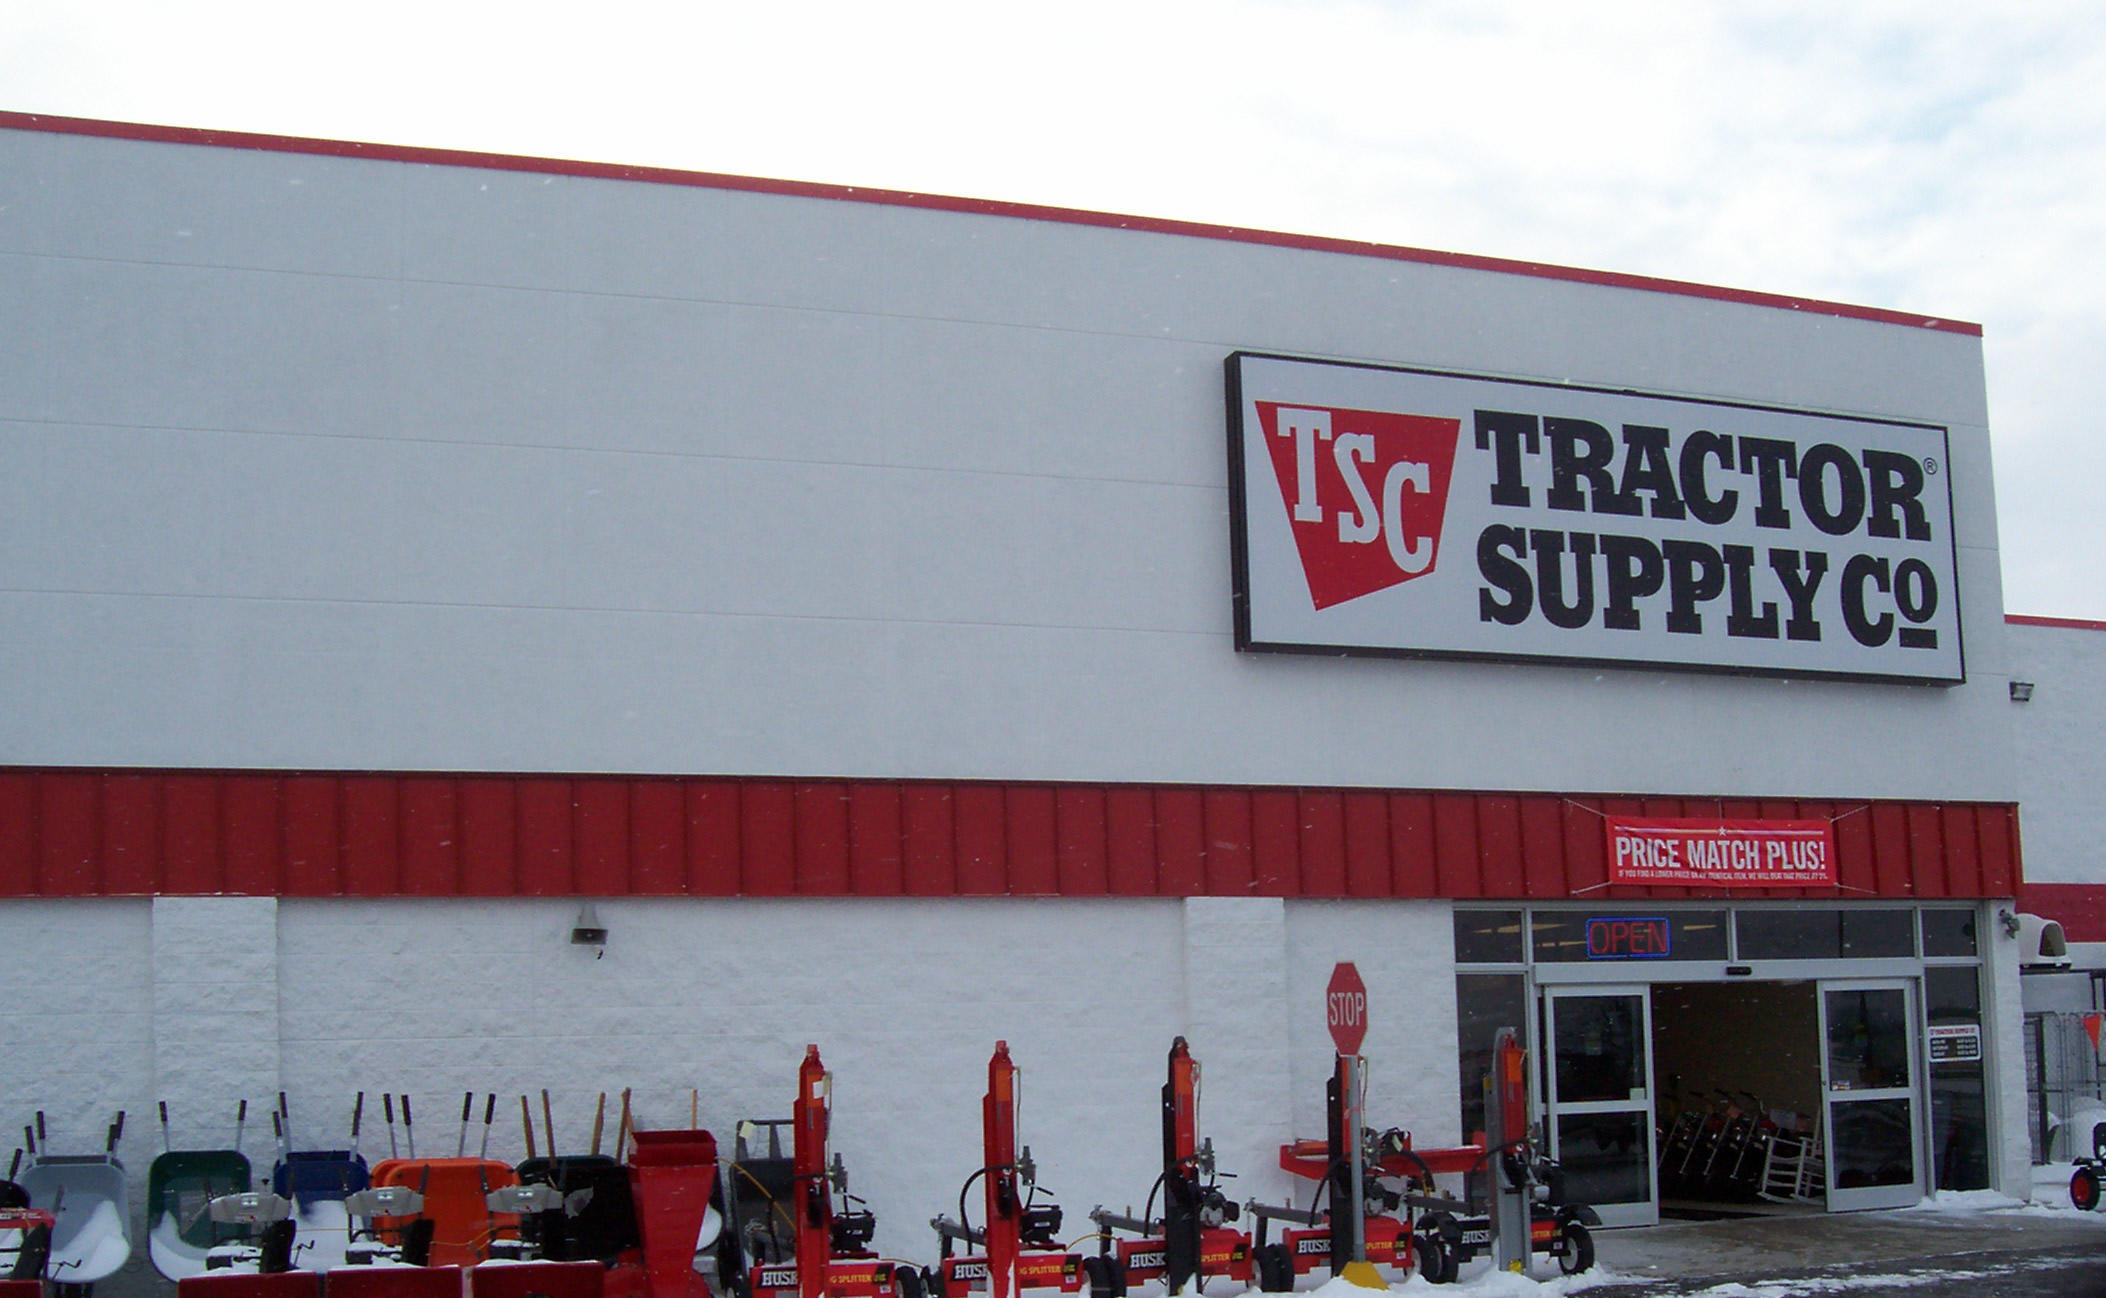 Tsc Tractor Supply : Tractor supply co brings economic growth for walnut ridge